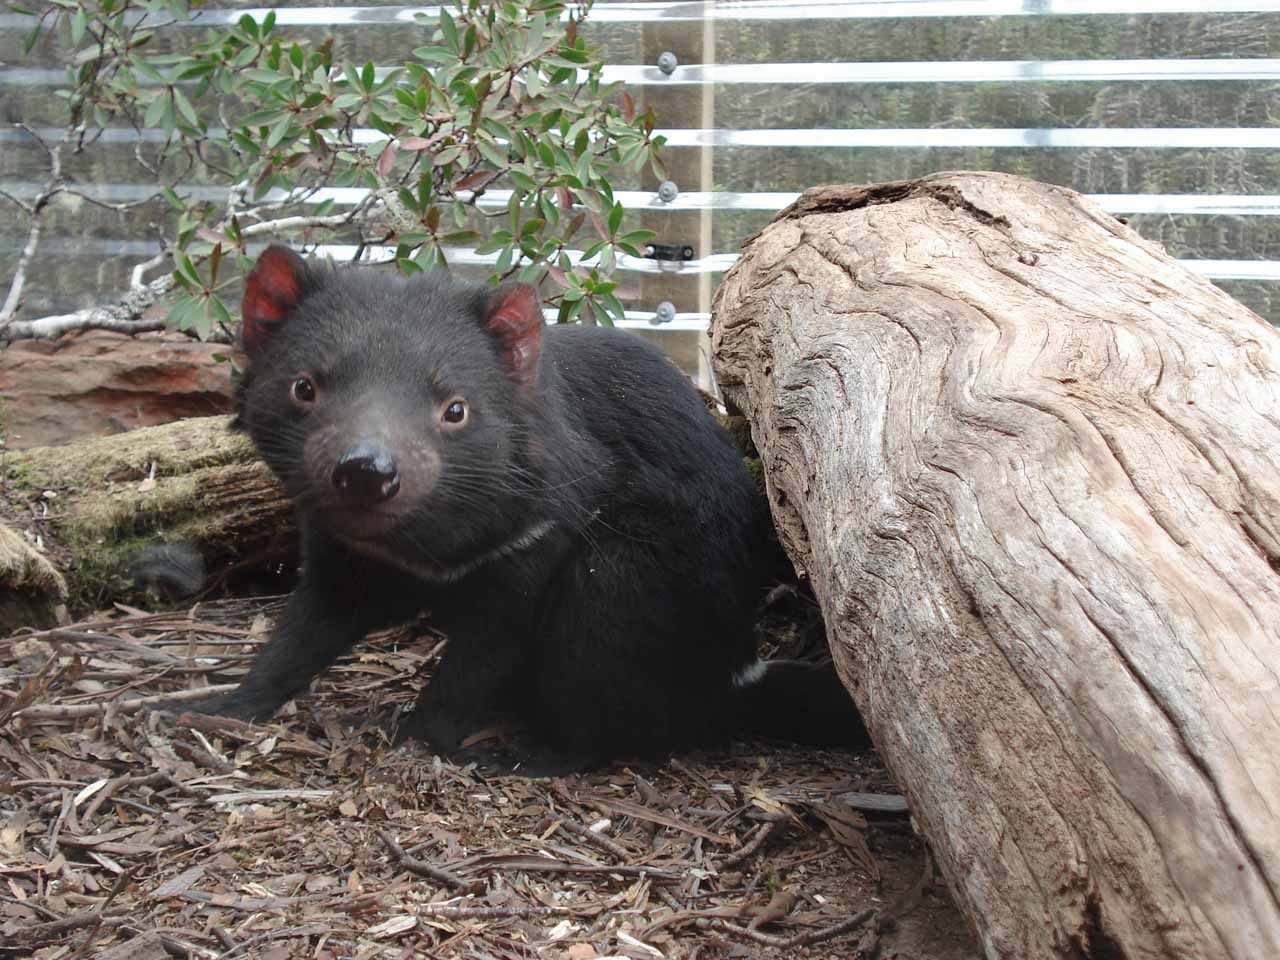 Cradle Valley was also worthwhile to us for a visit because we got to visit the Tasmanian Devil Sanctuary to see these guys up close